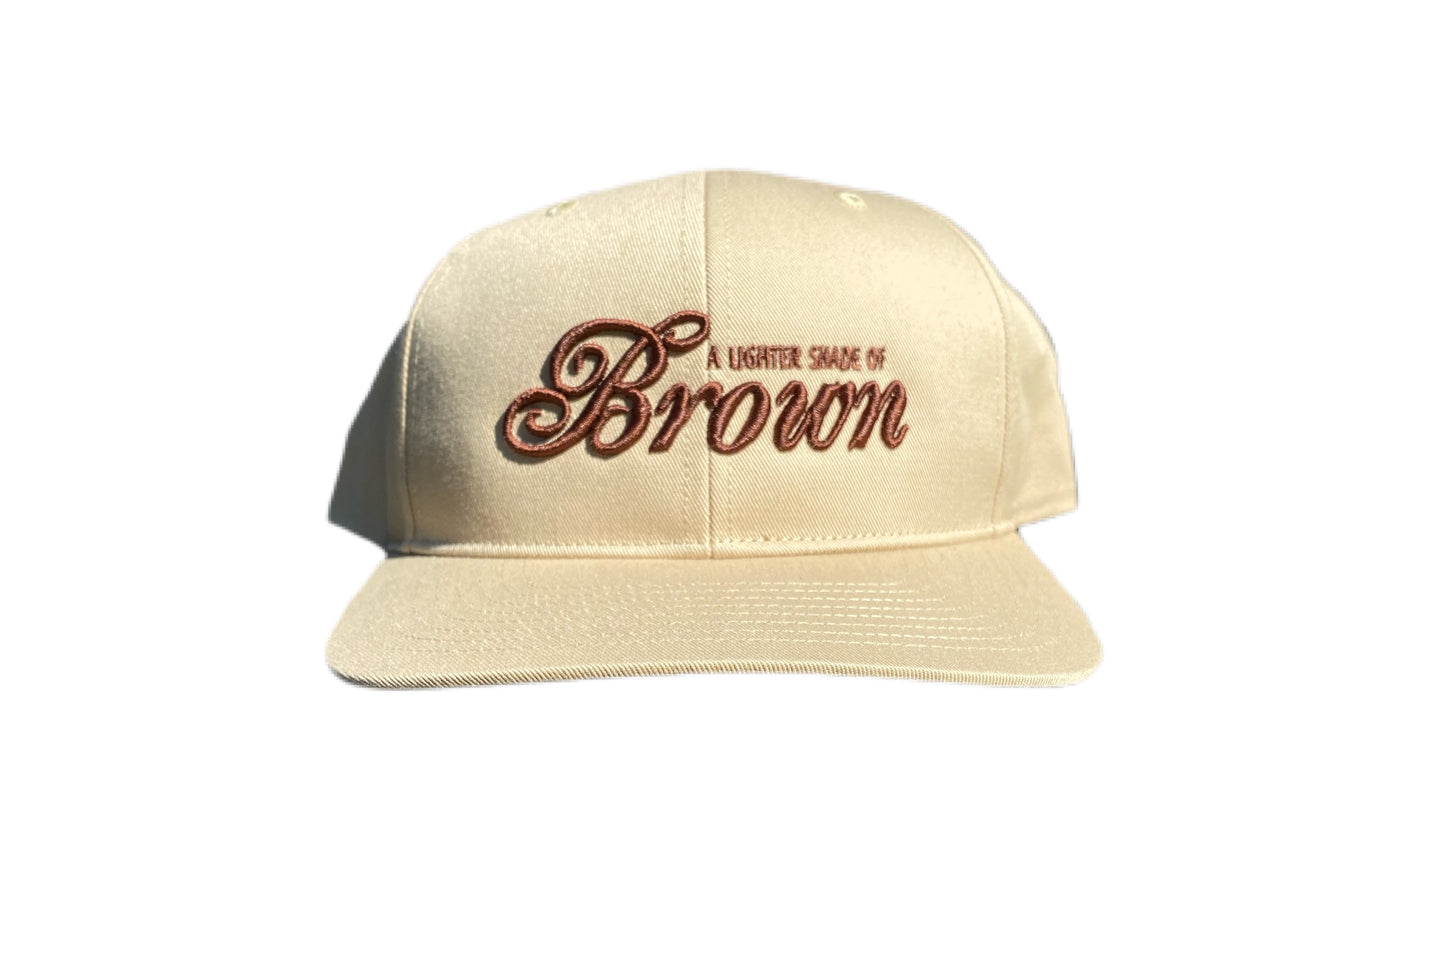 Lighter Shade Of Brown x Barely Broke Tan Hat